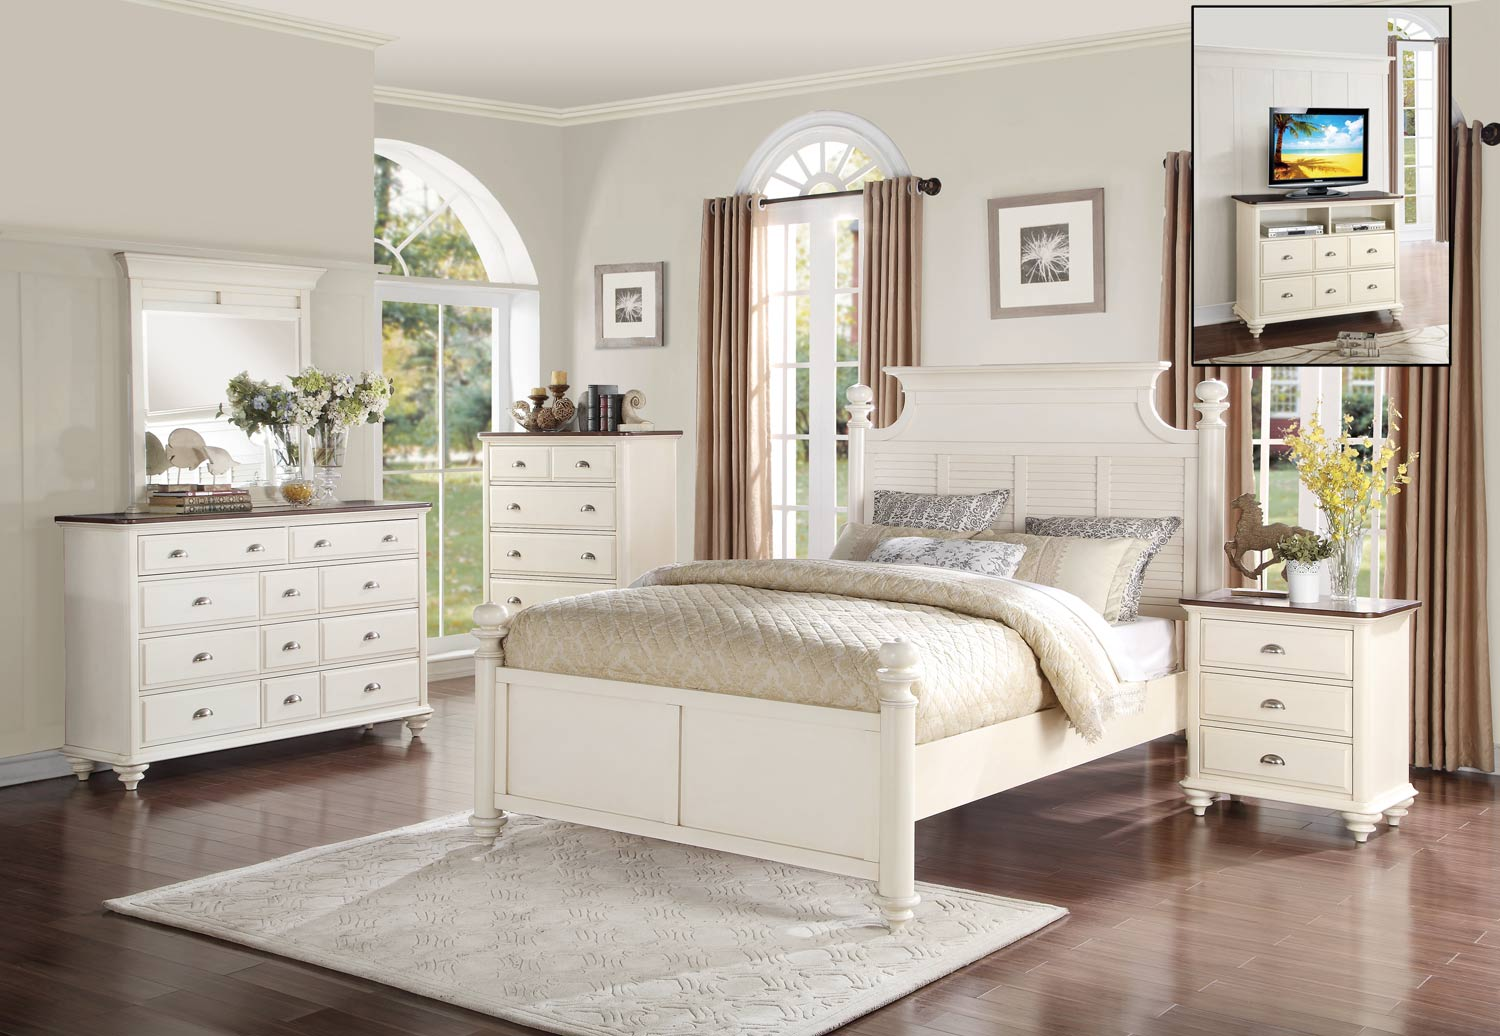 Homelegance Floresville Bedroom Set - Antique White